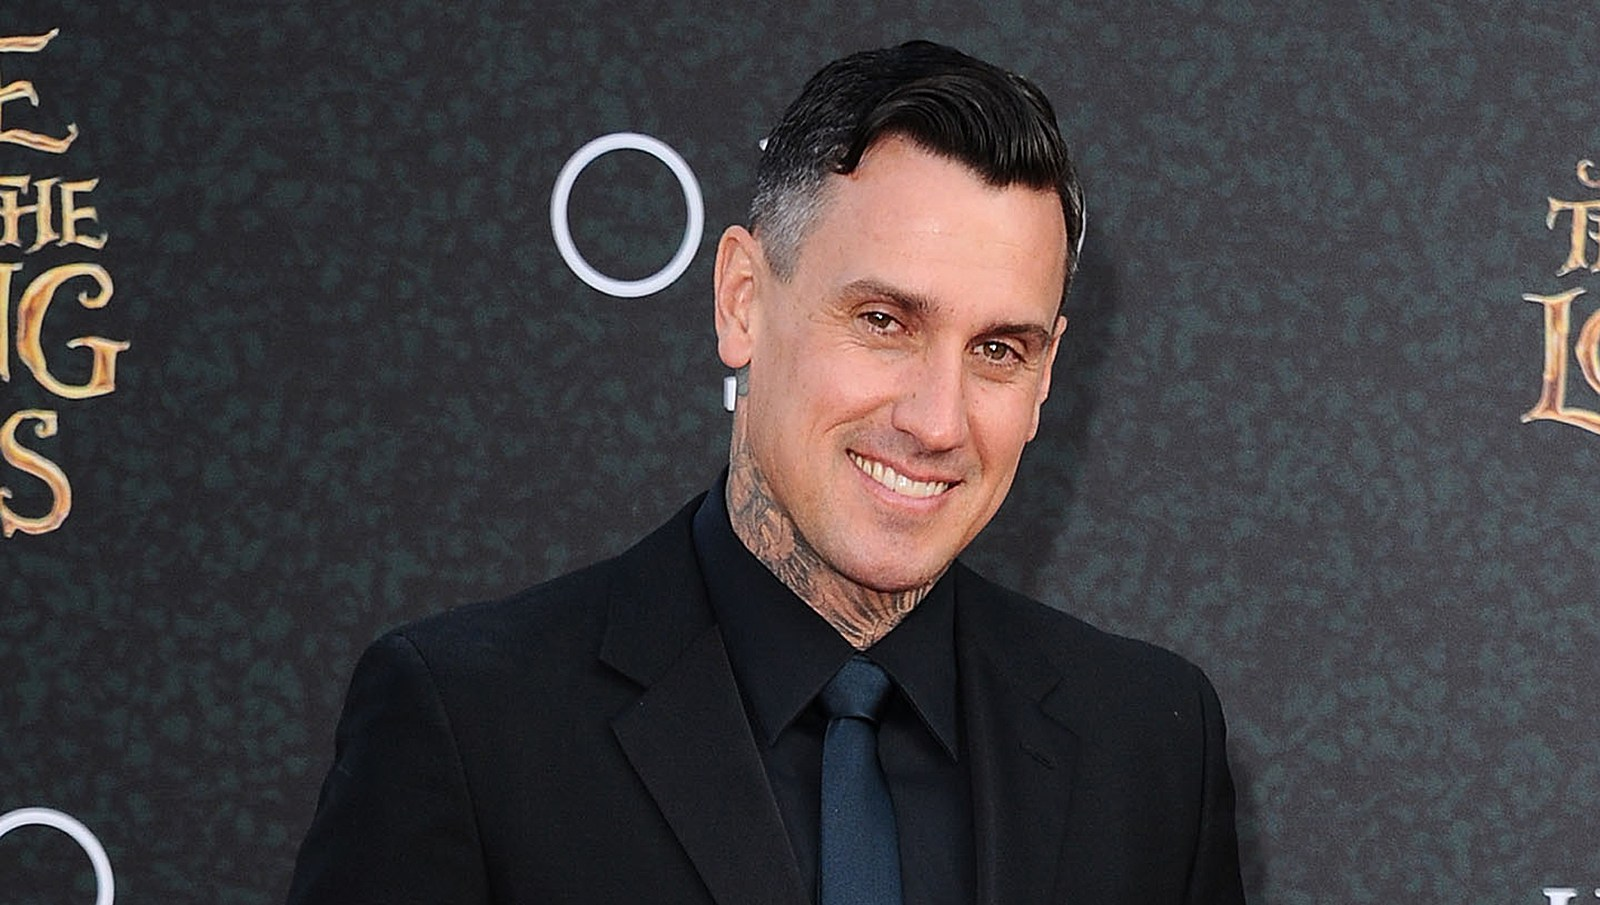 Carey Hart Warns to 'Think Twice' About Looting in Malibu